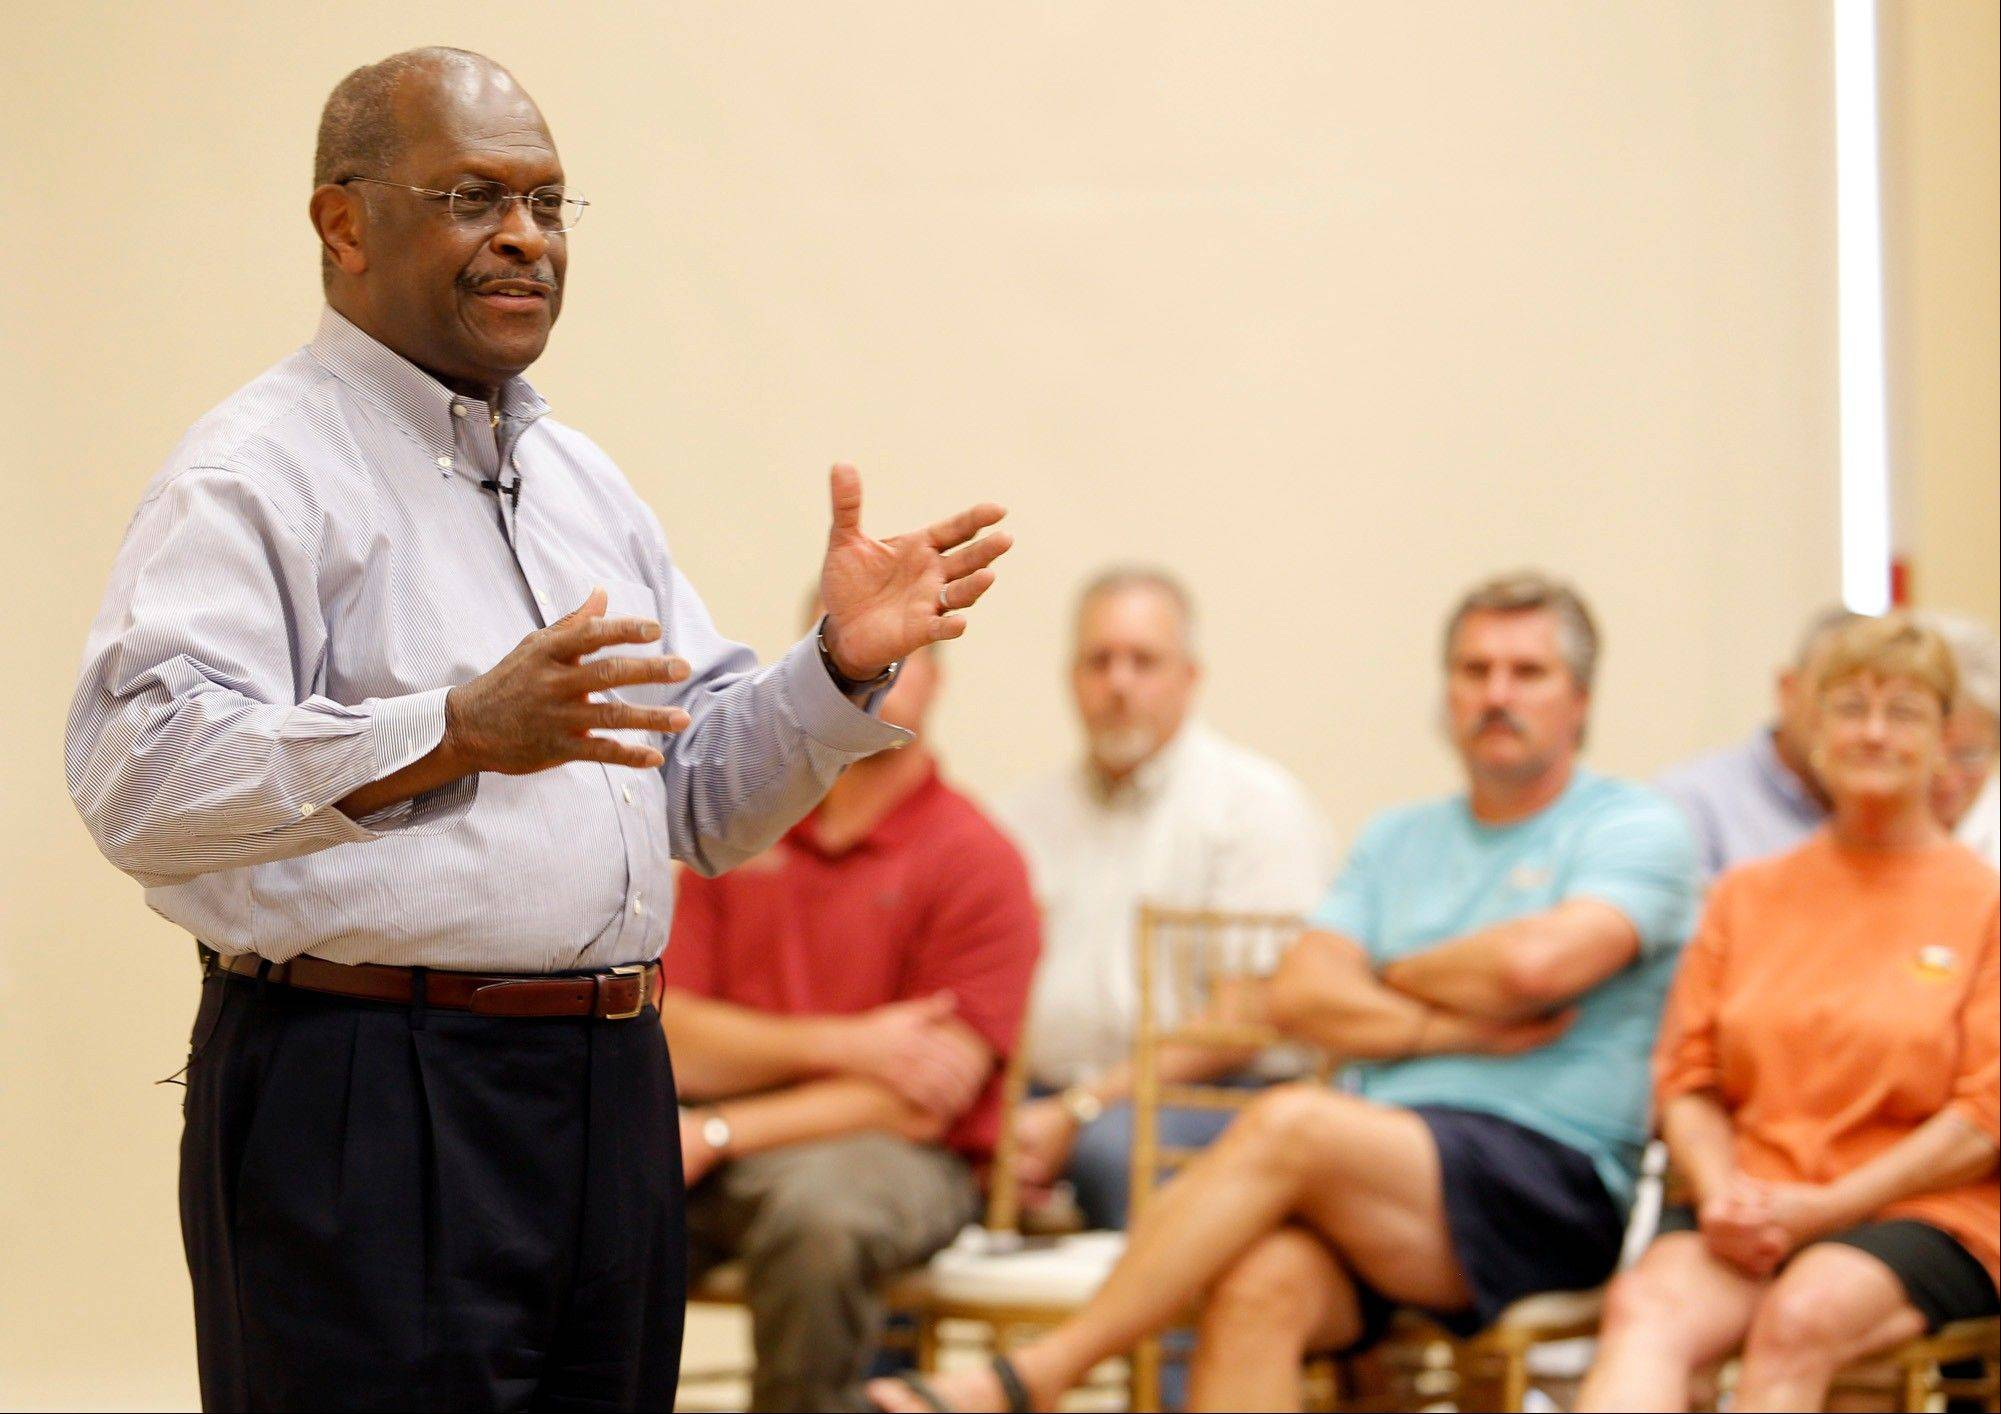 Republican presidential candidate Herman Cain speaks to supporters and others at the PIPAC Center in Cedar Falls, Iowa, on Tuesday.